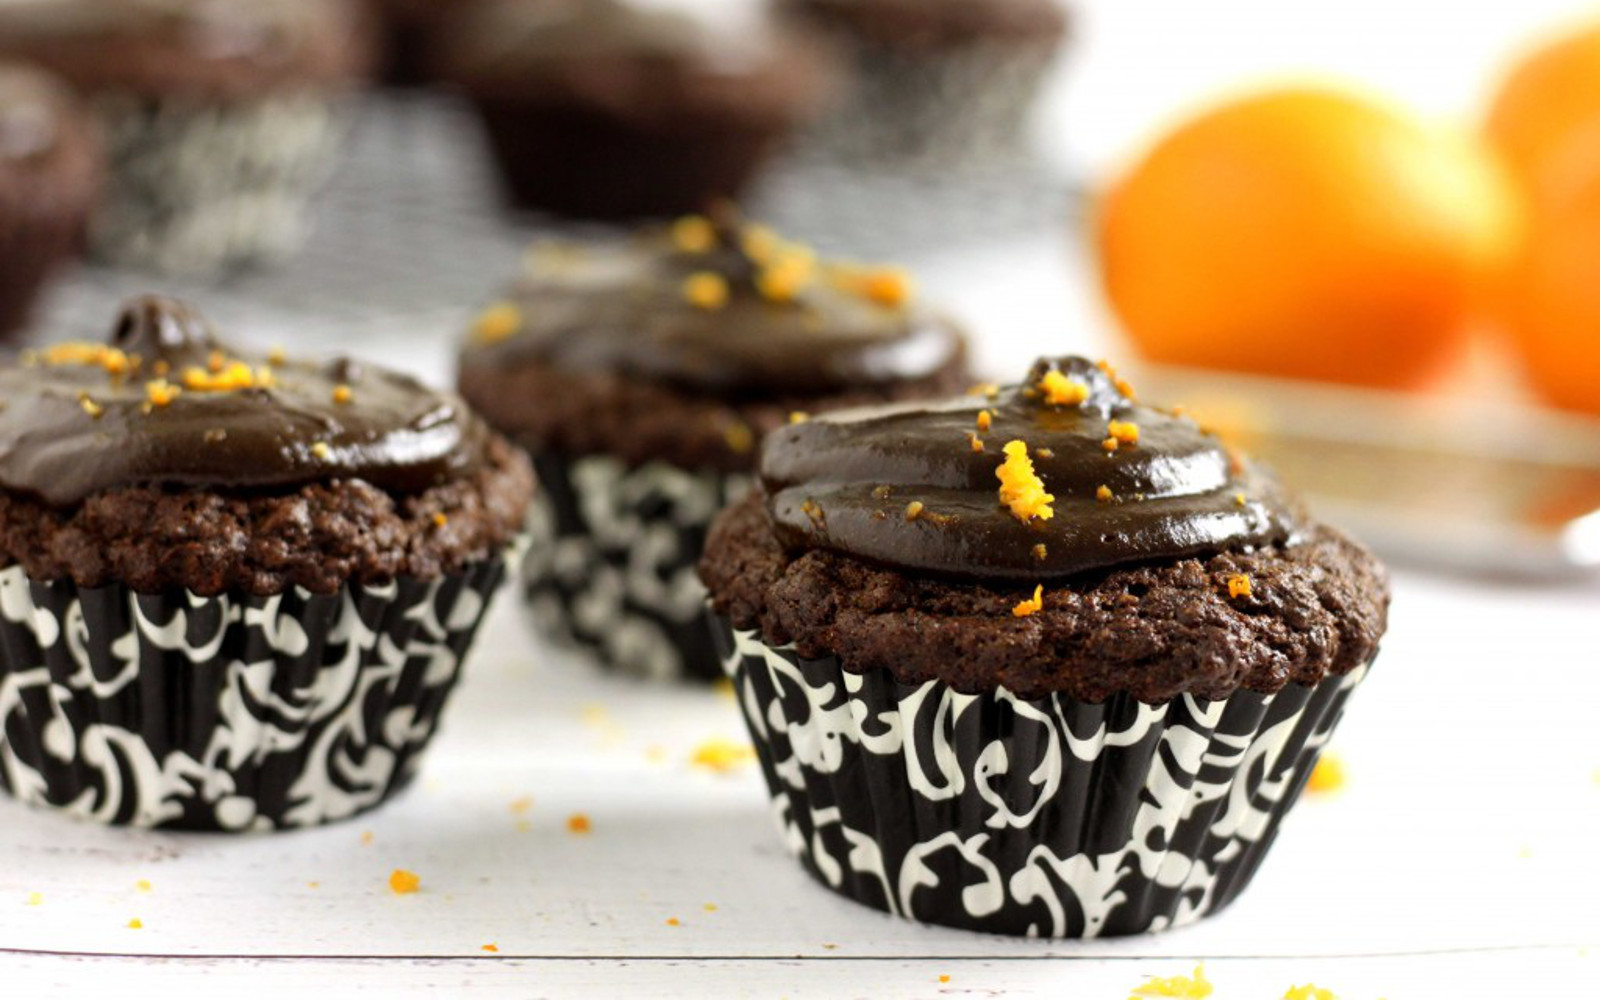 Orange-Ginger Cupcakes With a Spiced Date Frosting